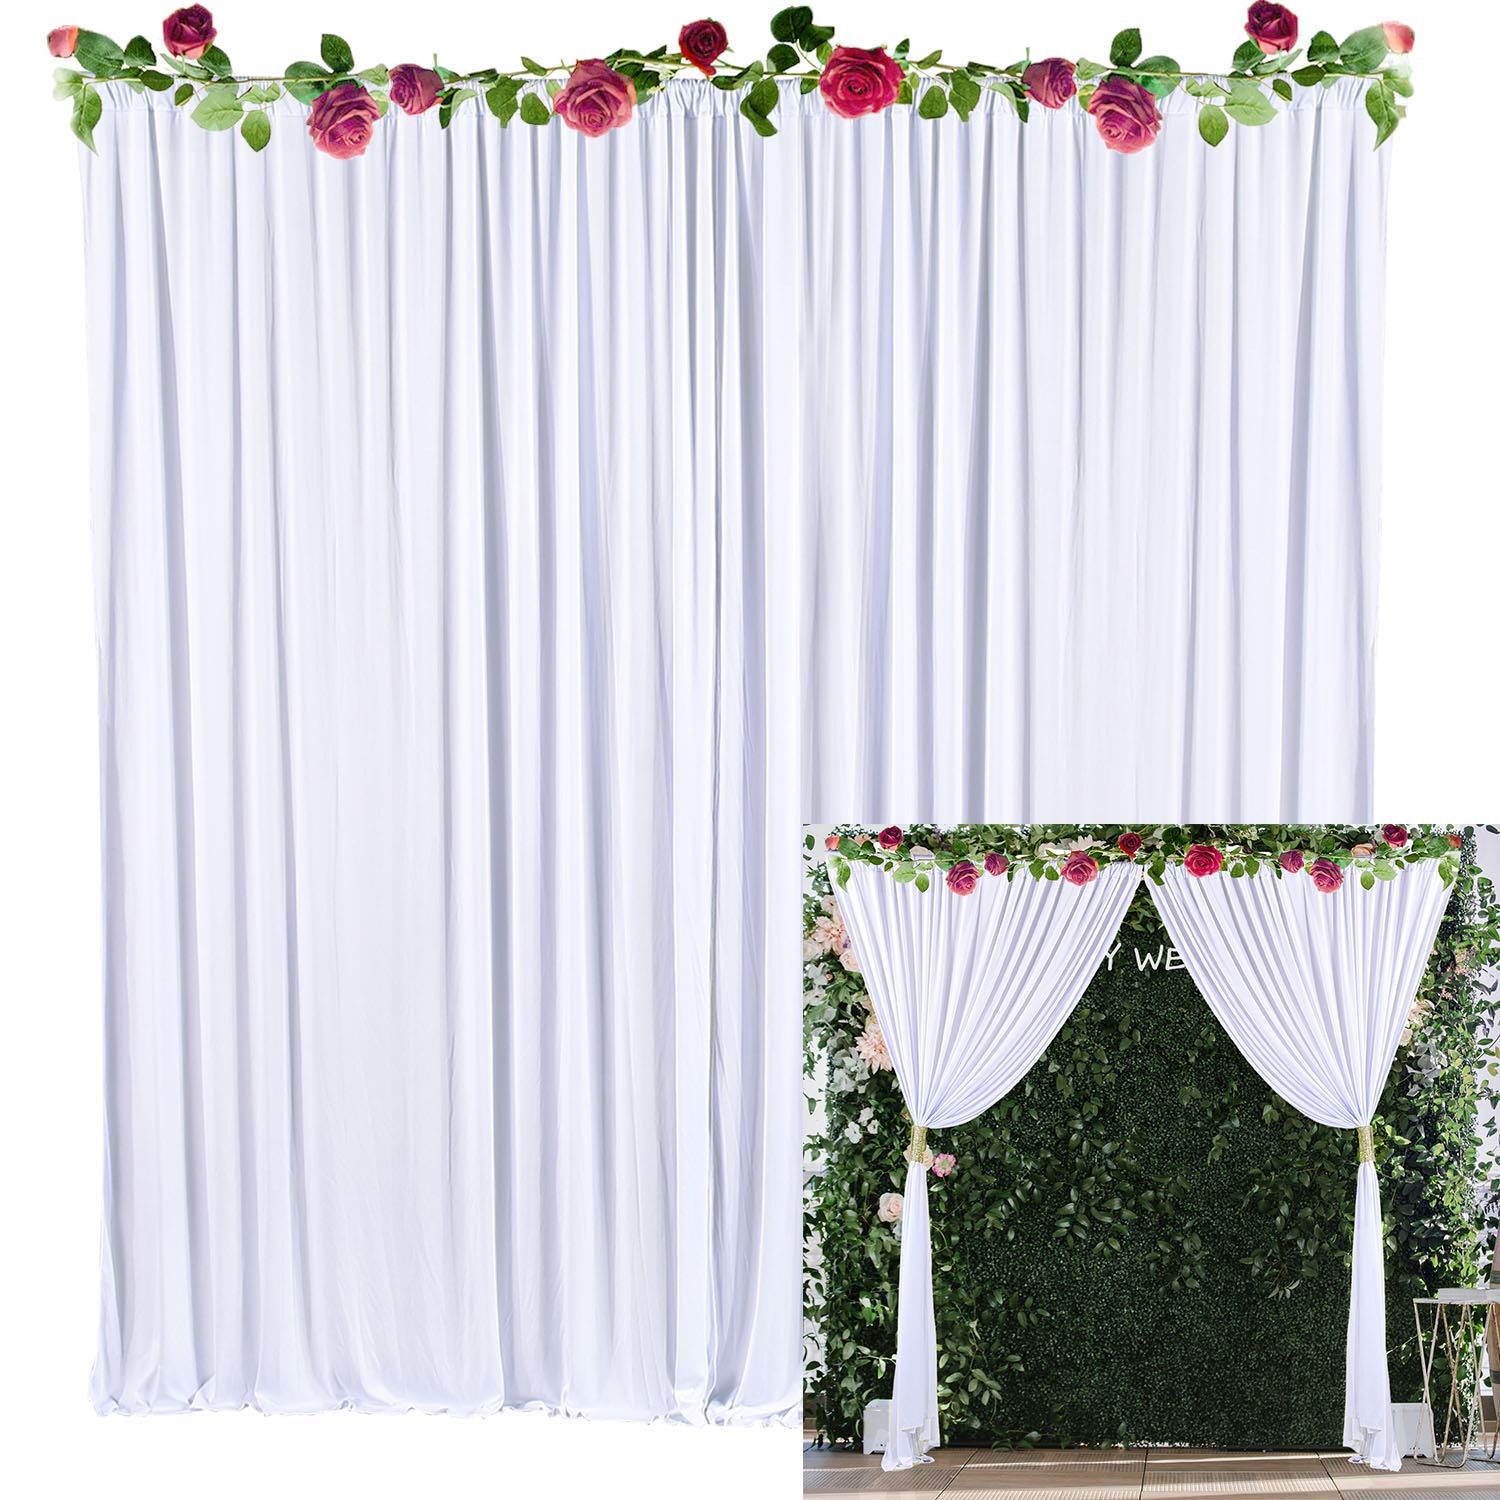 White Backdrop Curtain Photo Drape Backdrop for Parties Weddings Baby Shower Birthday Engagement Photography with Golden Curtain Tiebacks 5ft x 10ft (Pack of Two) by Tao-Ge